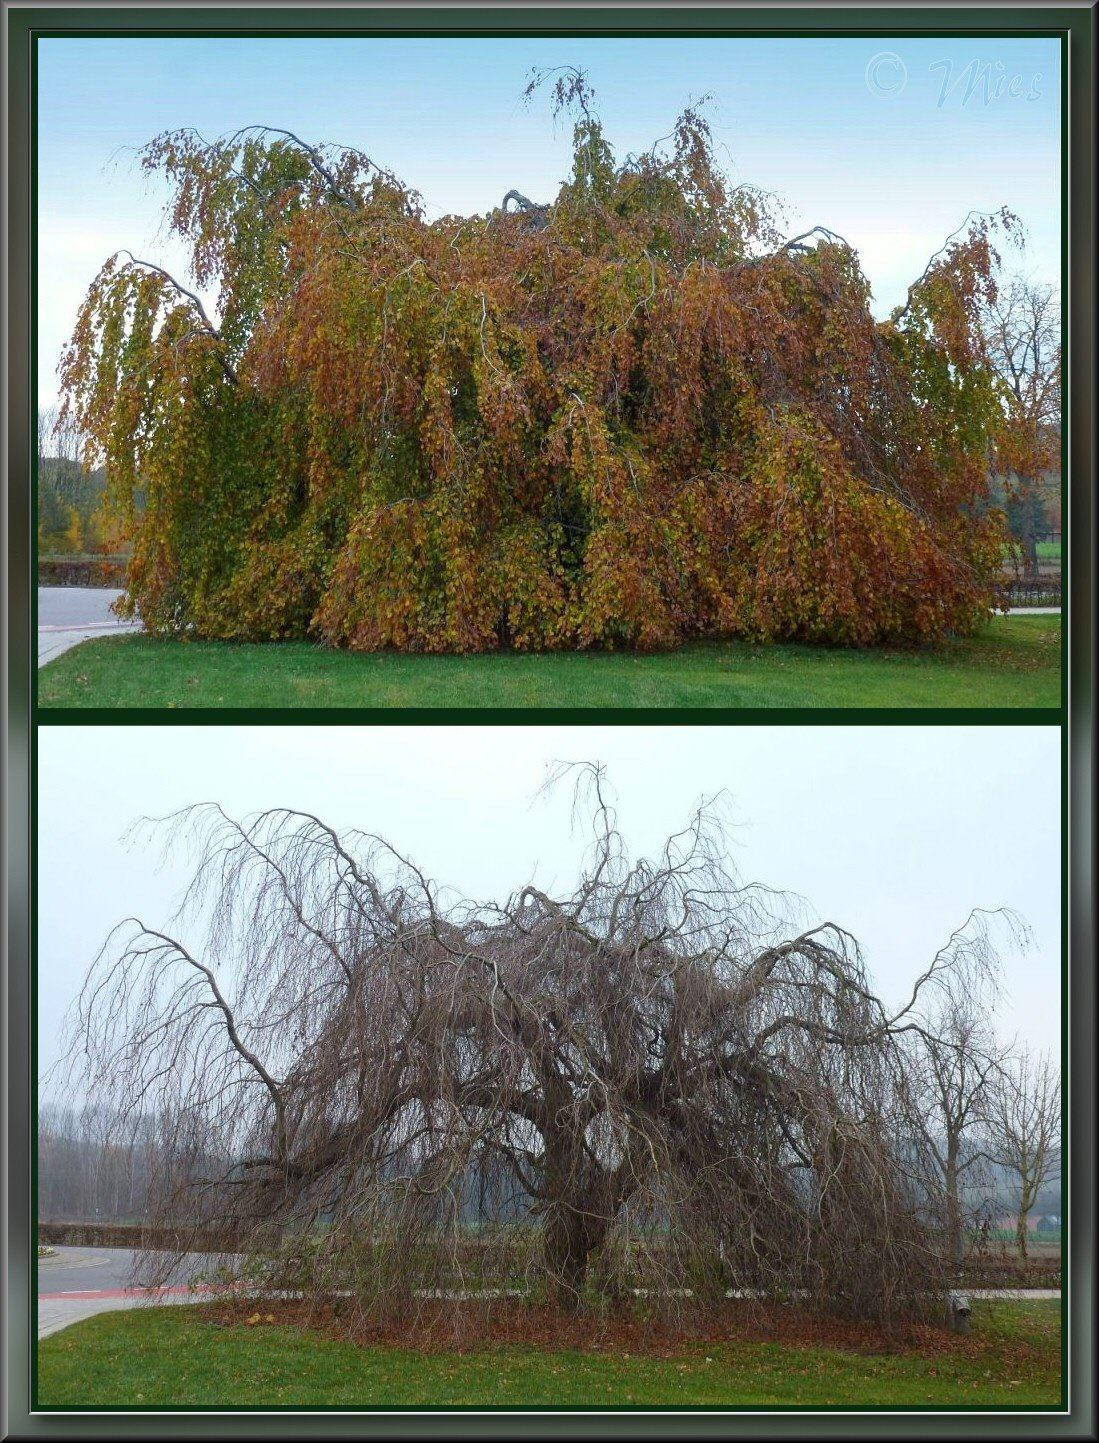 Same tree, Same location, Twice